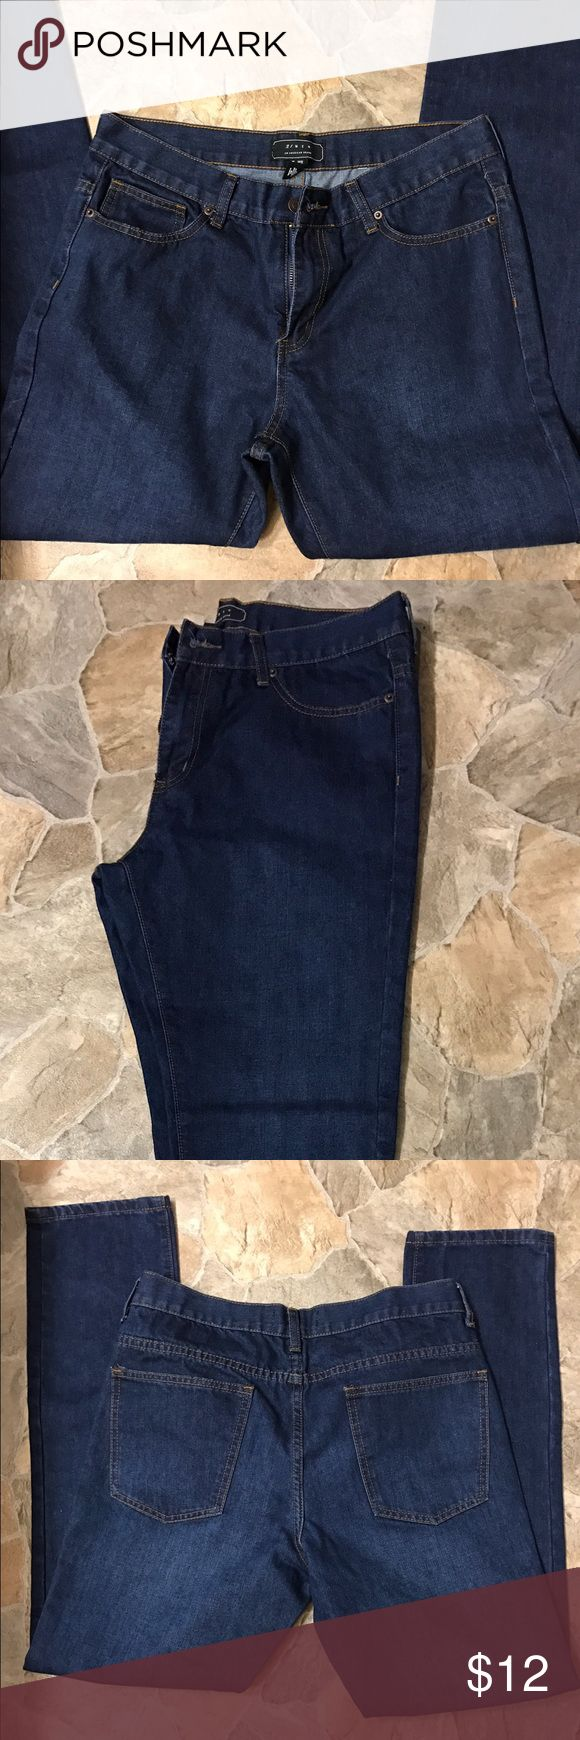 Men's dark blue denim jeans from 21 Men 21 Men brand jeans size 33x32. NWOT skinny-fit with a bit of a thicker material. Dressy-looking dark wash. 21men Jeans Skinny